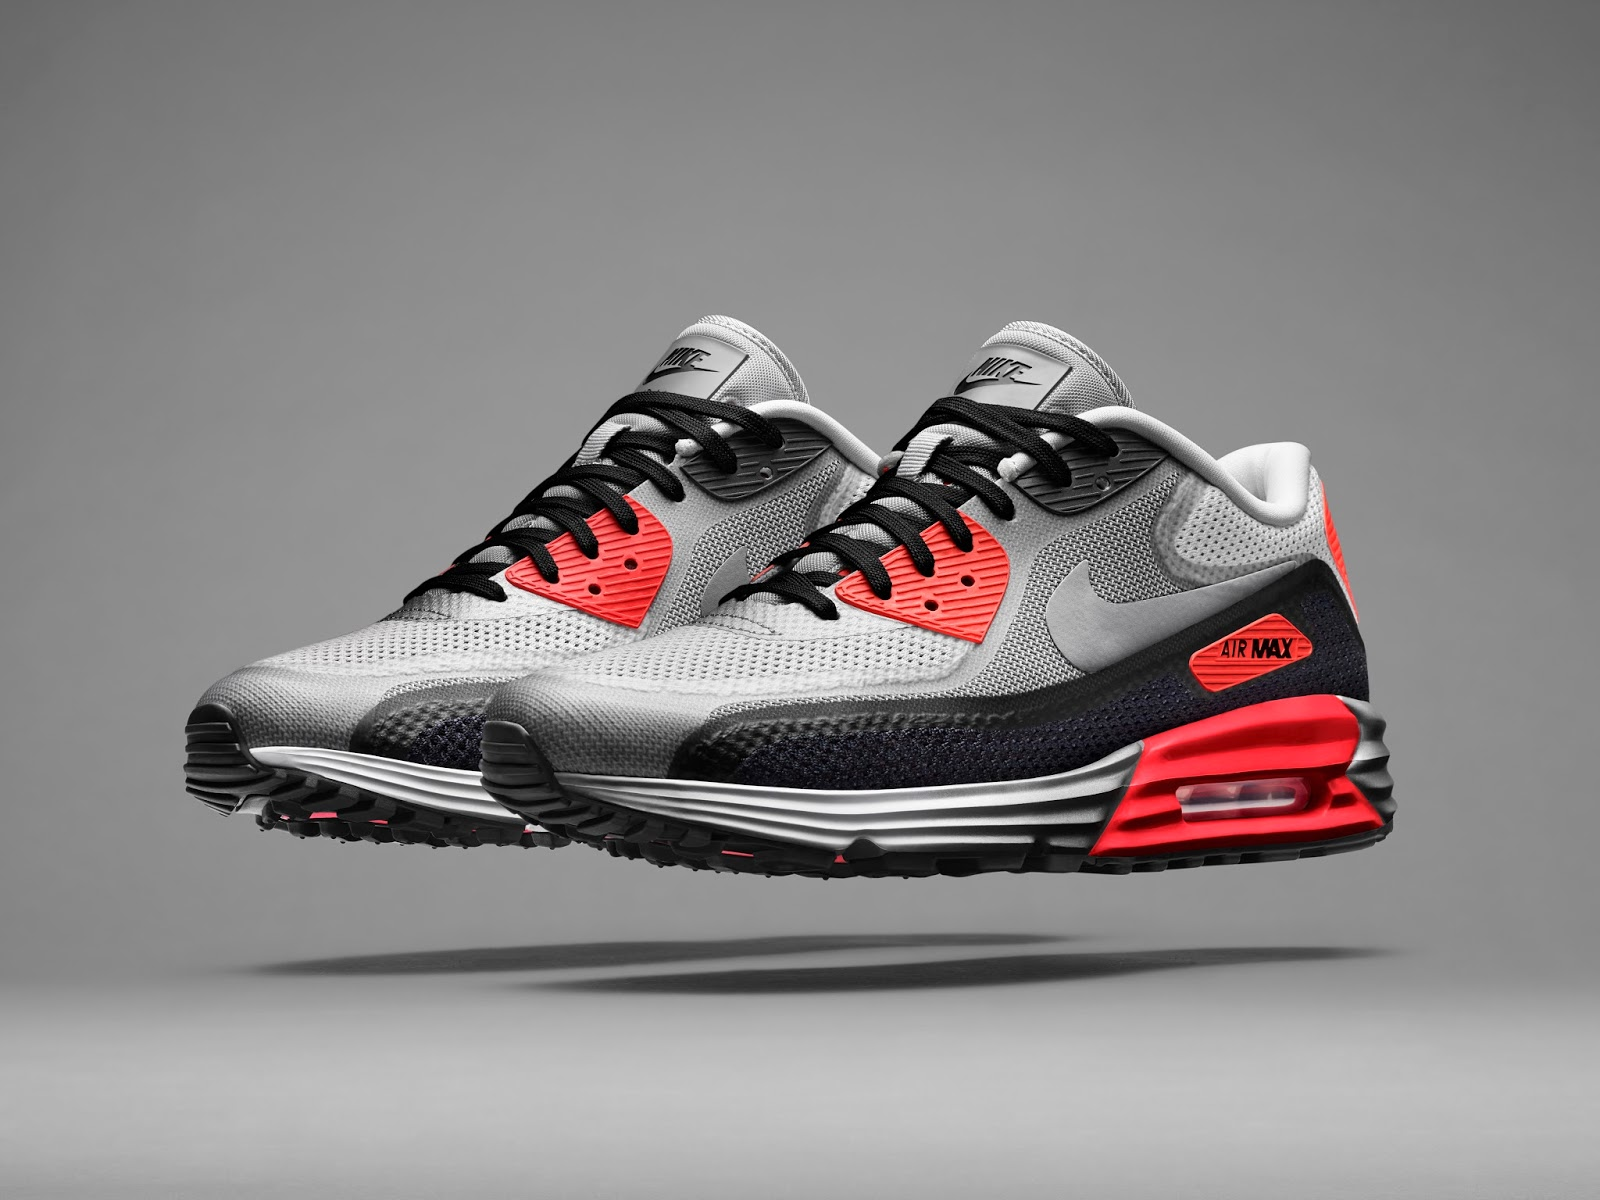 brand new 5894c 96df2 Nike Air Max Lunar90 2013